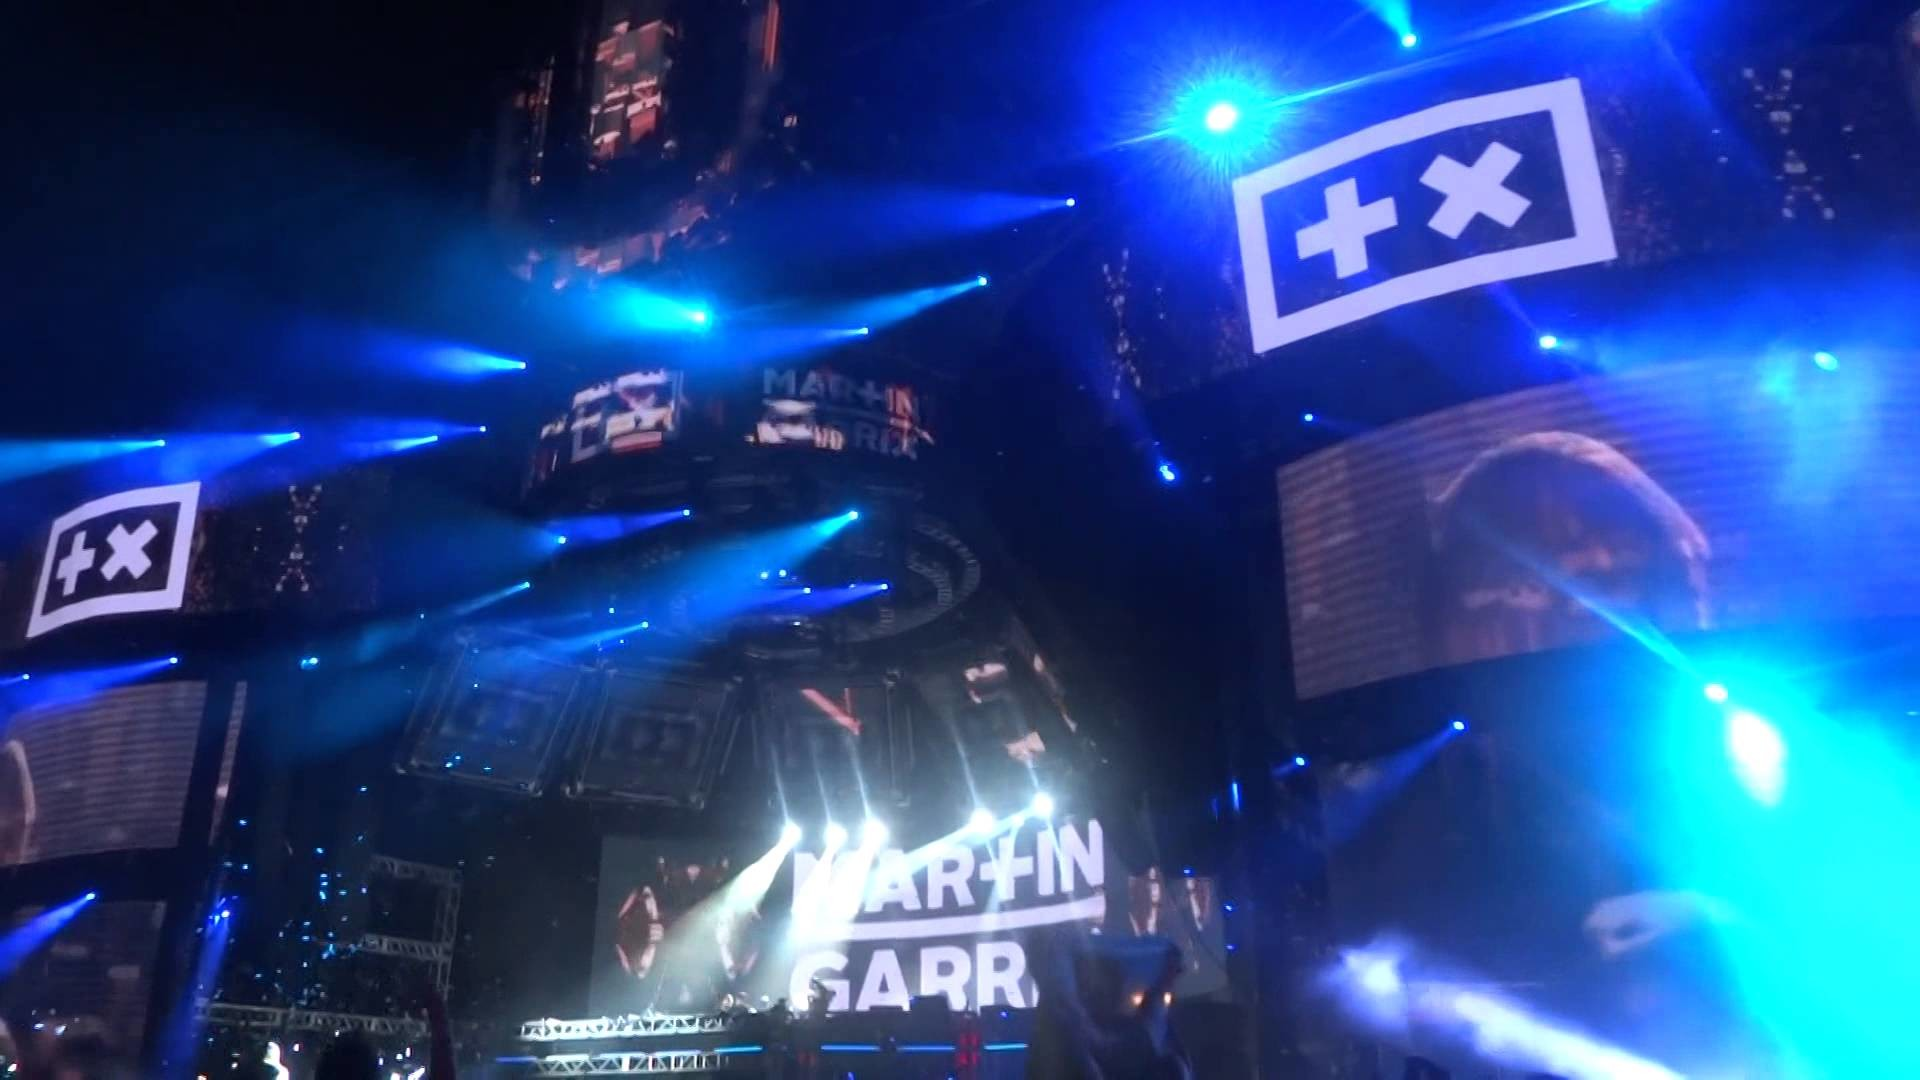 1920x1080 Martin Garrix with Usher at Mainstage, Ultra Music Festival 2015 .1 -  YouTube